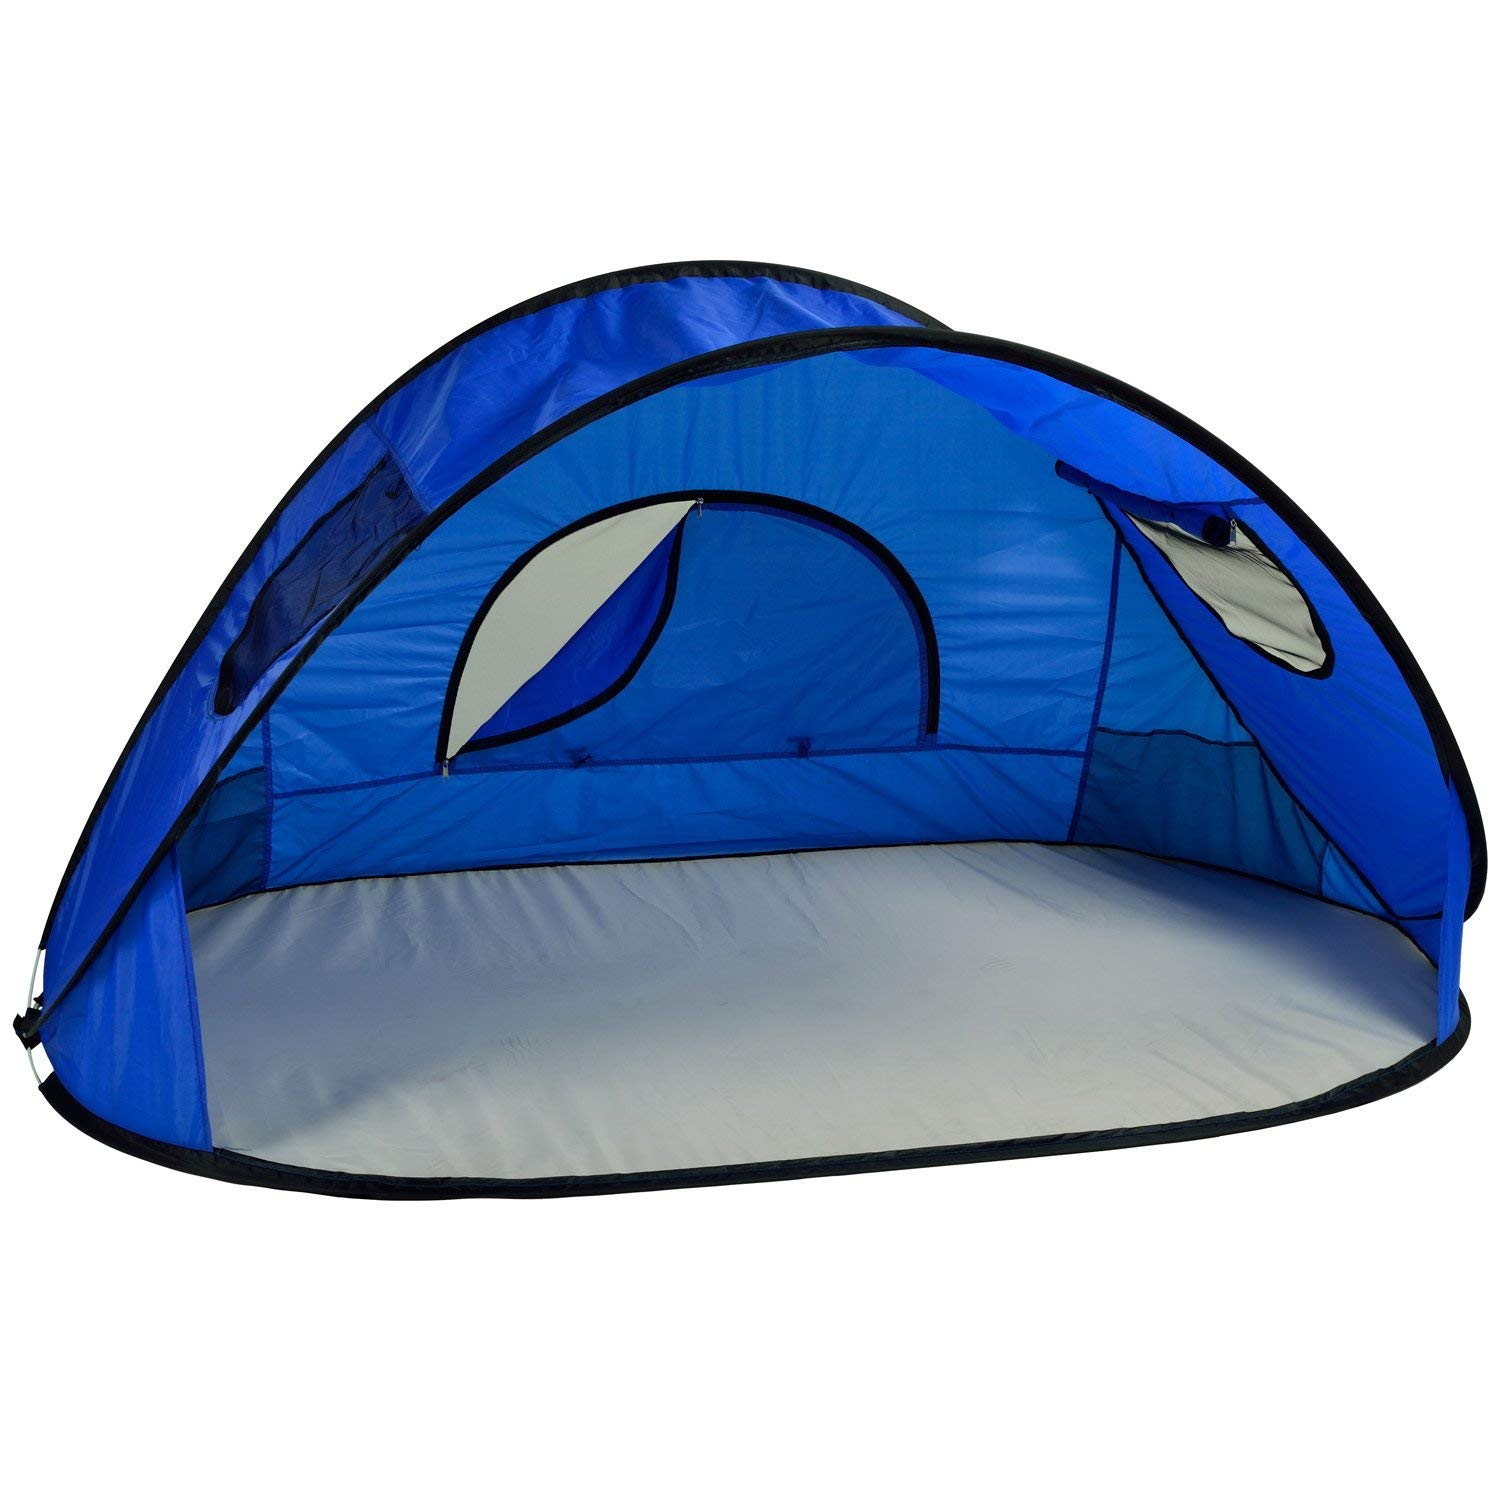 Picnic at Ascot Family Size Instant Easy Up Beach Tent Sun Shelter, Royal Blue [並行輸入品] B07R4W12DD